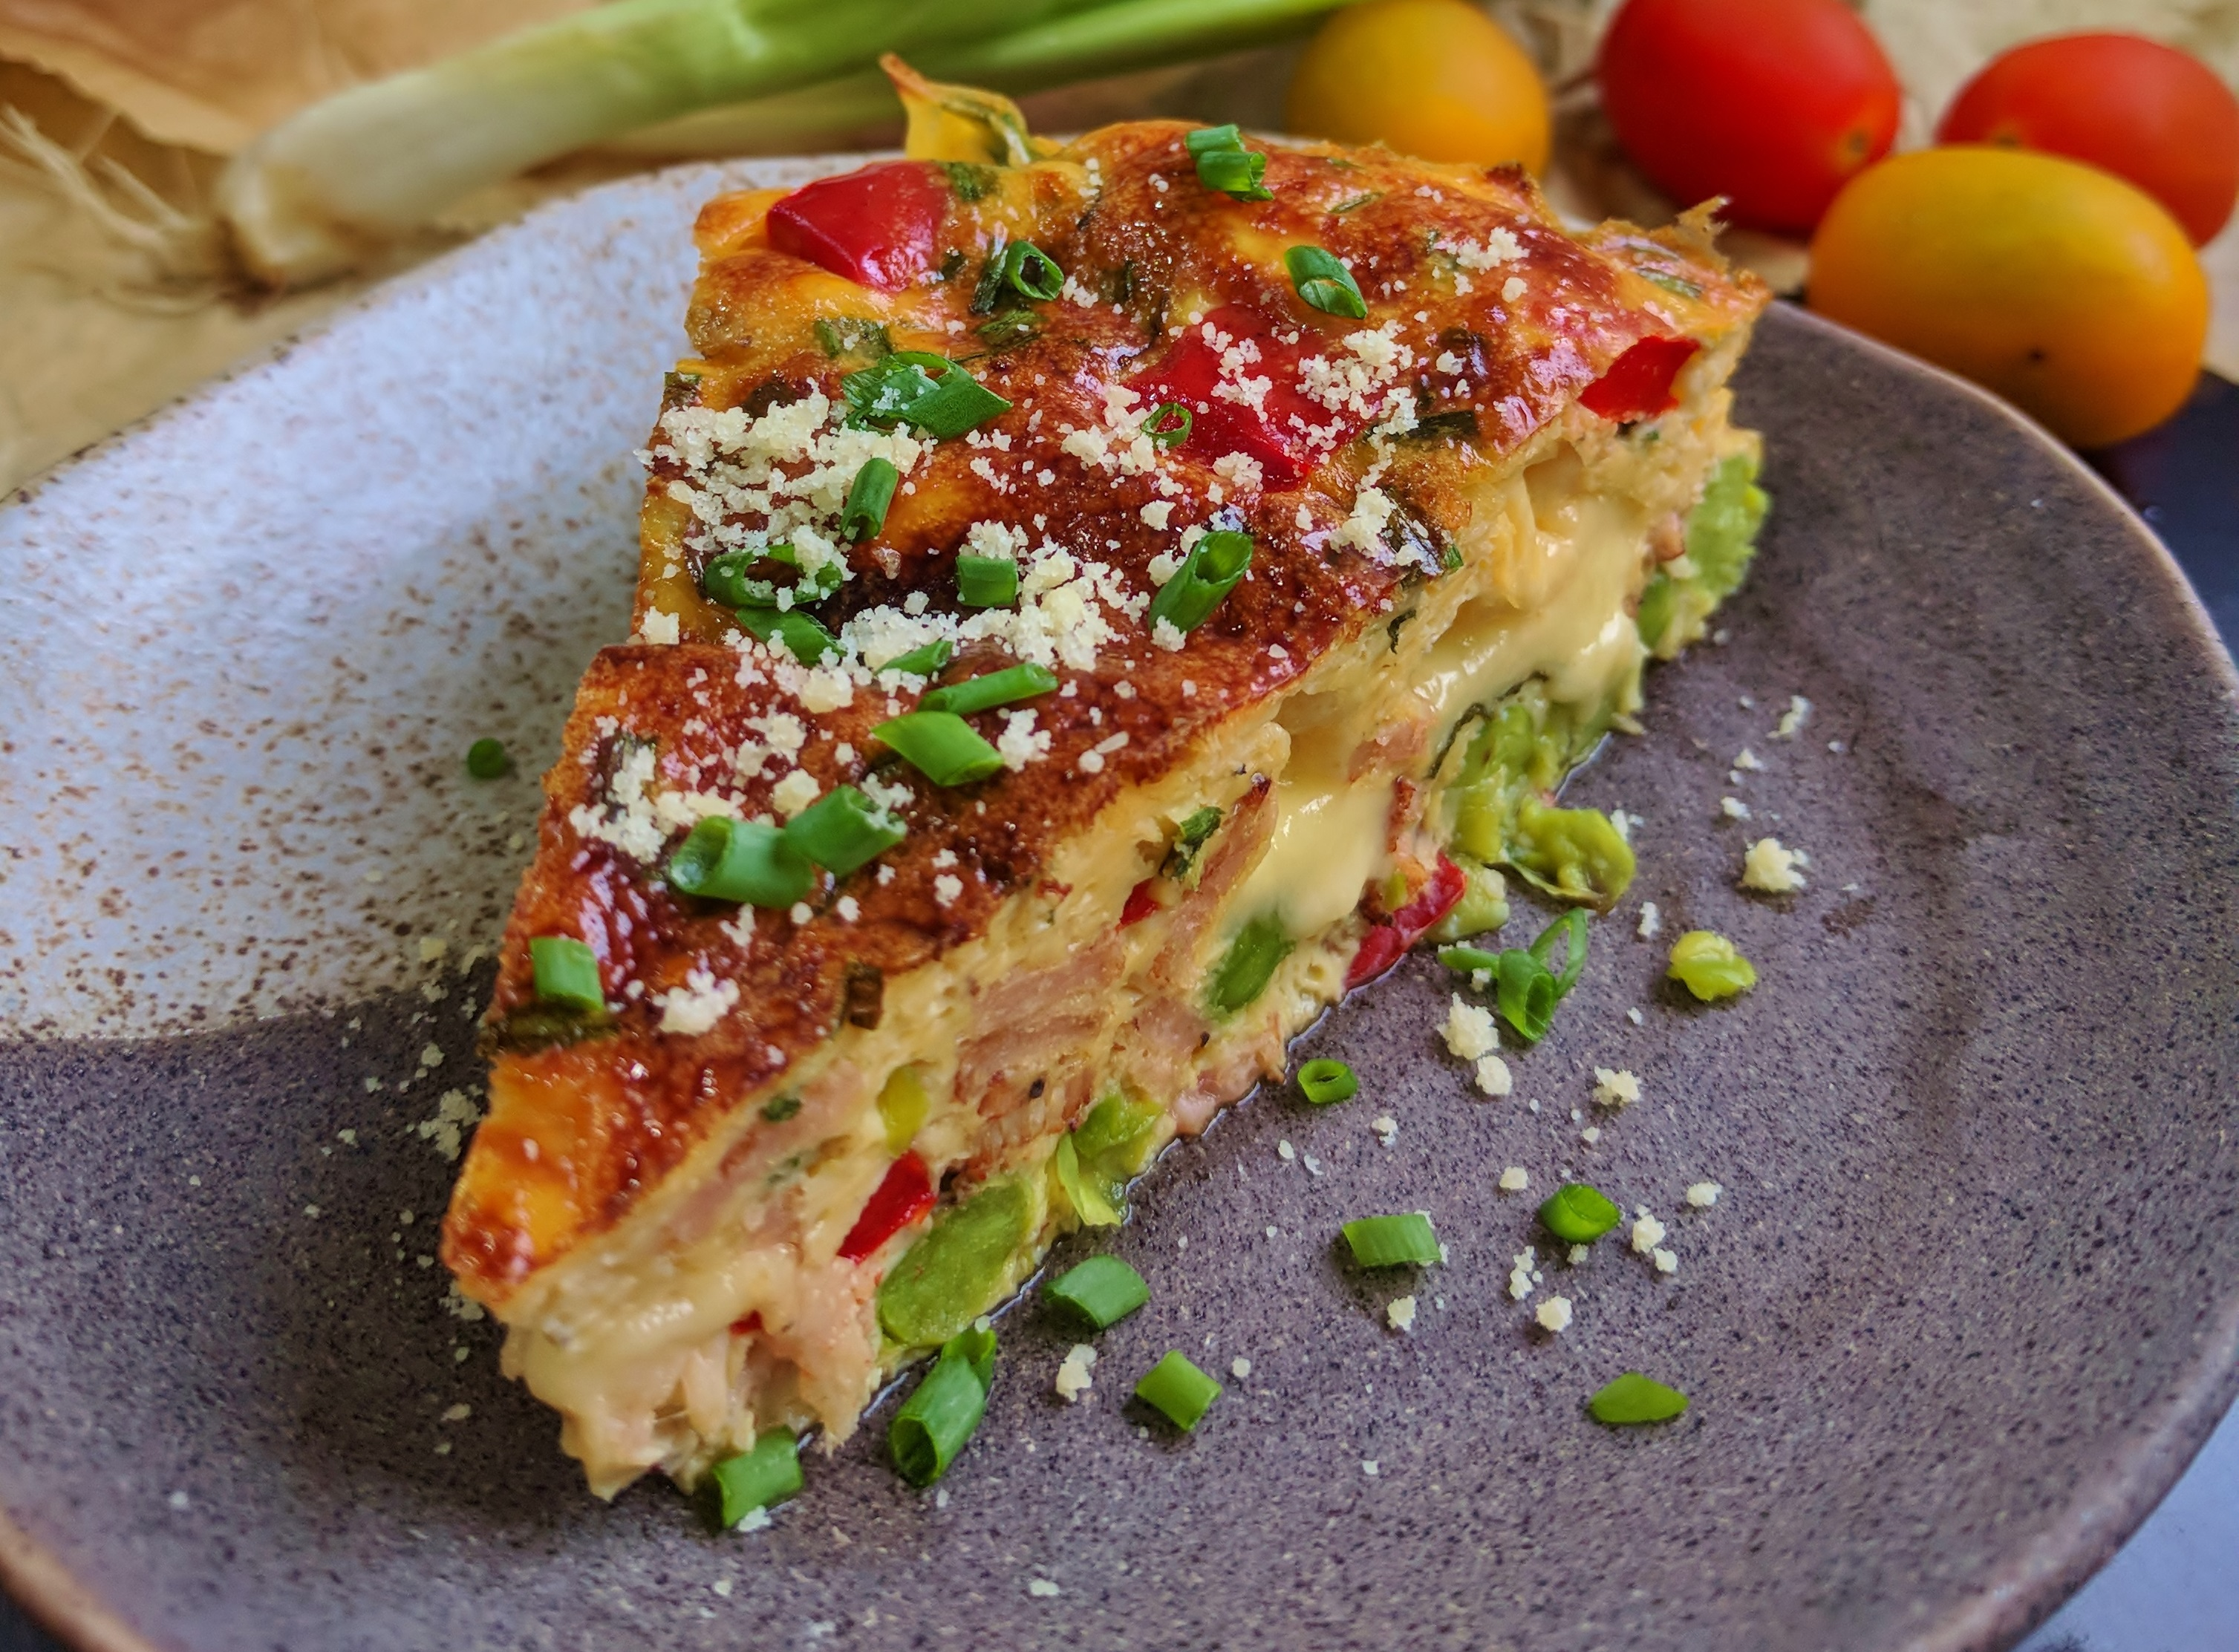 Edam Cheese, Beef Bacon & Vegetable Baked Frittata